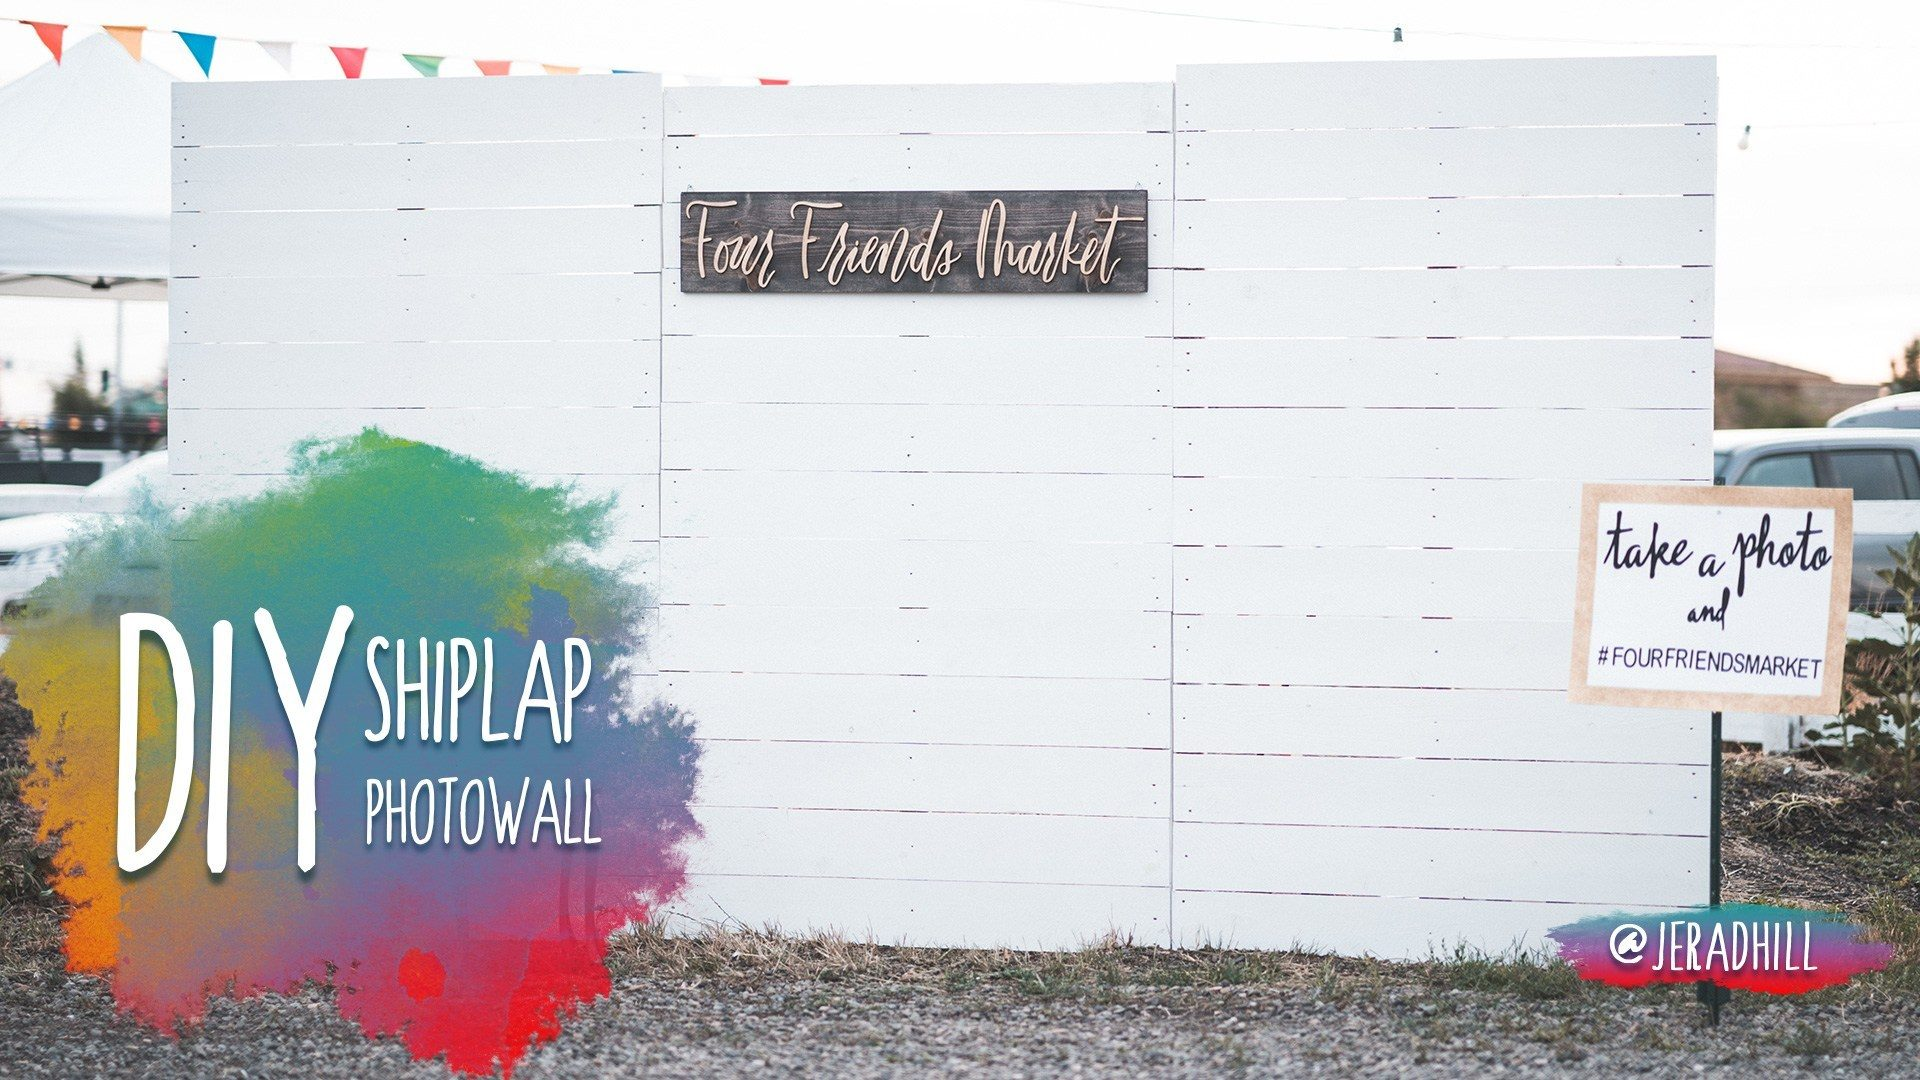 DIY-Shiplap-Photowall-Header